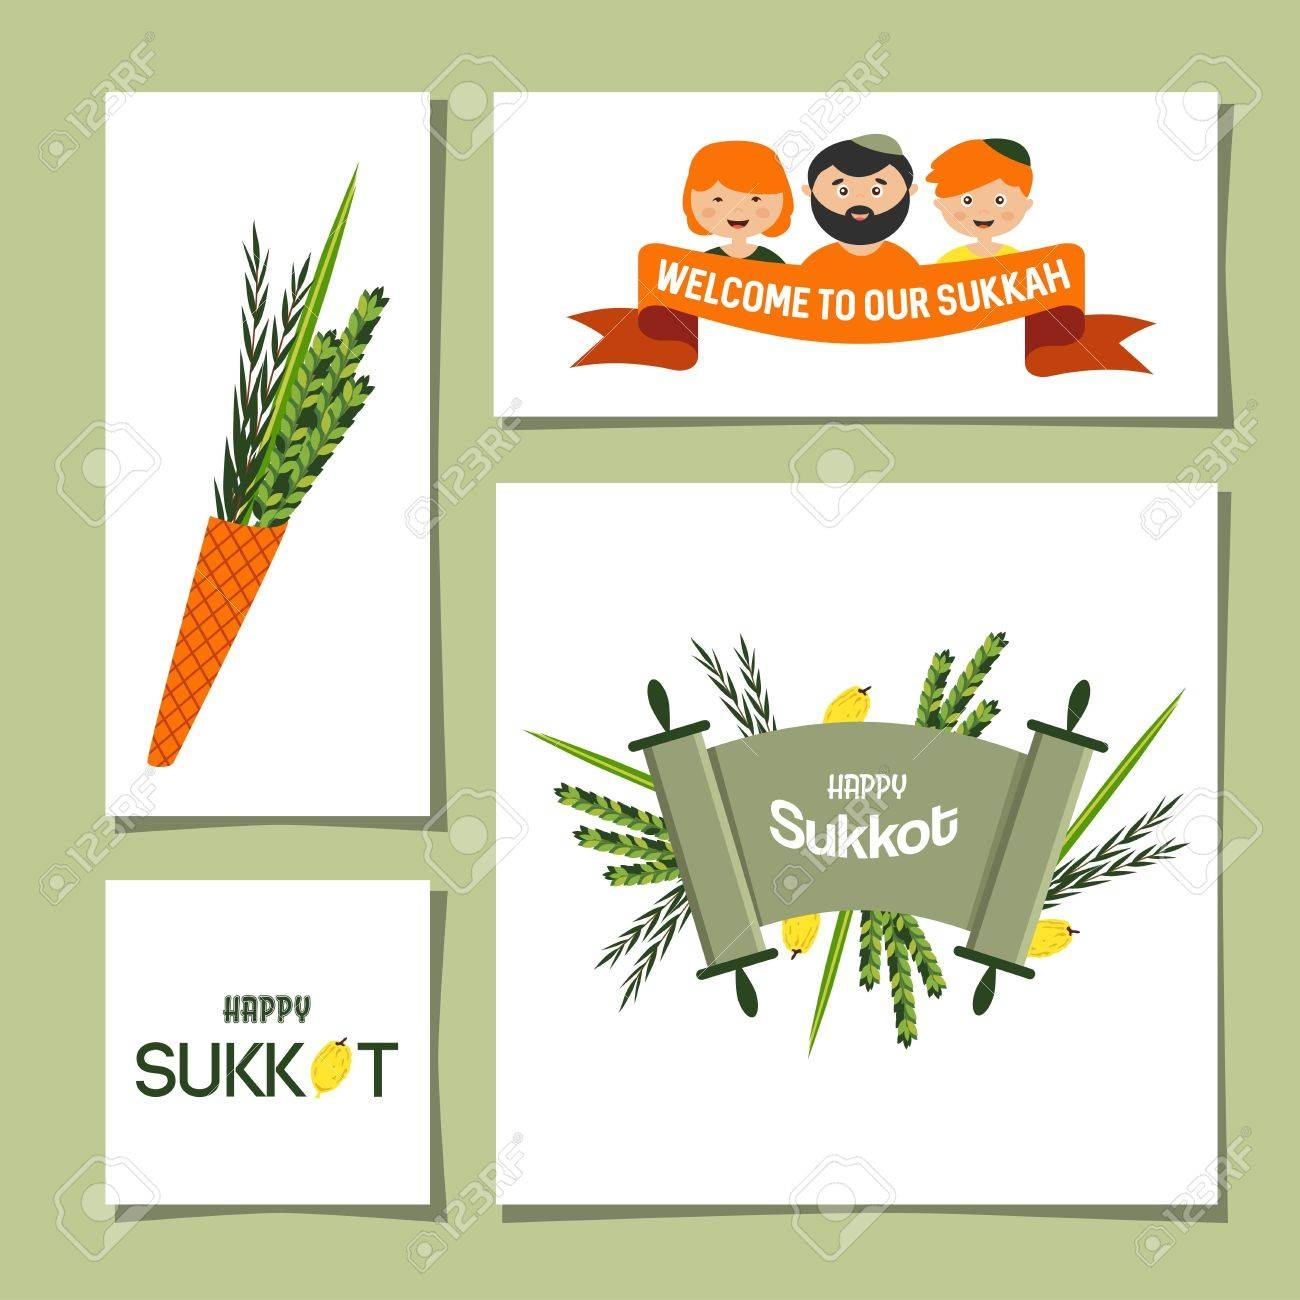 Set Of Greeting Cards For Jewish Holiday Sukkot Stock Vector